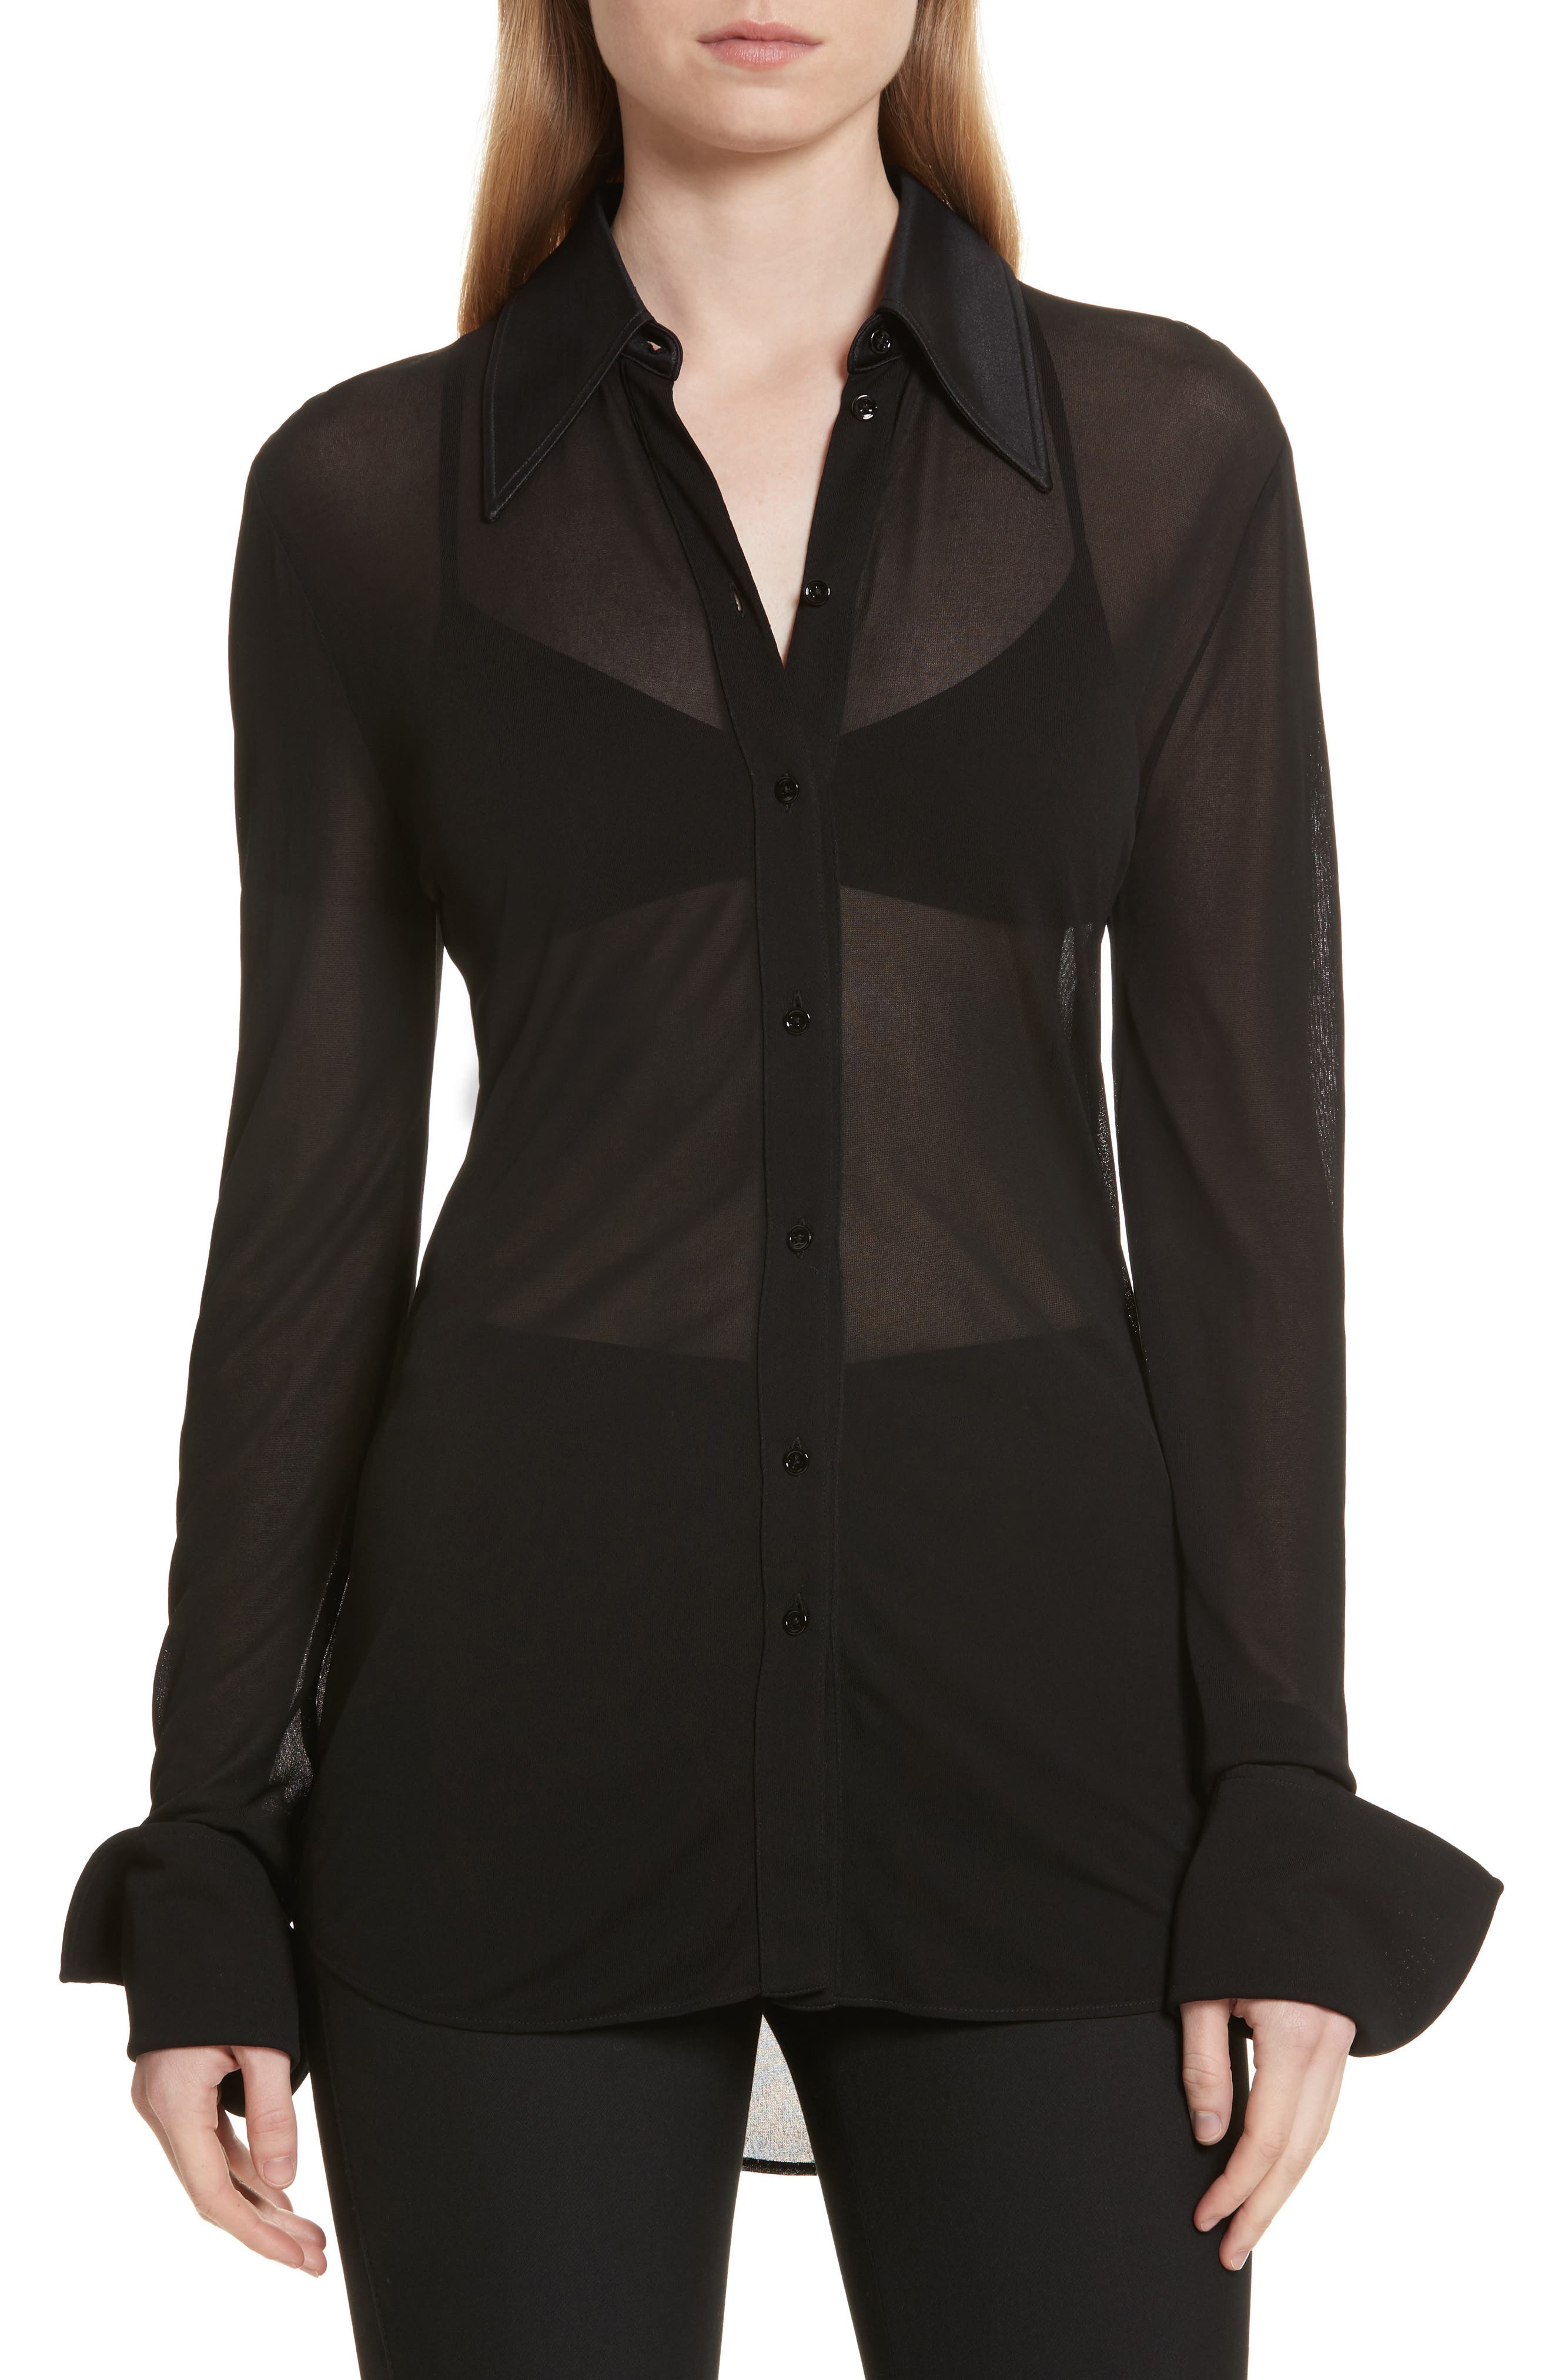 Slater Sheer Crepe Net Shirt,                         Main,                         color, 001